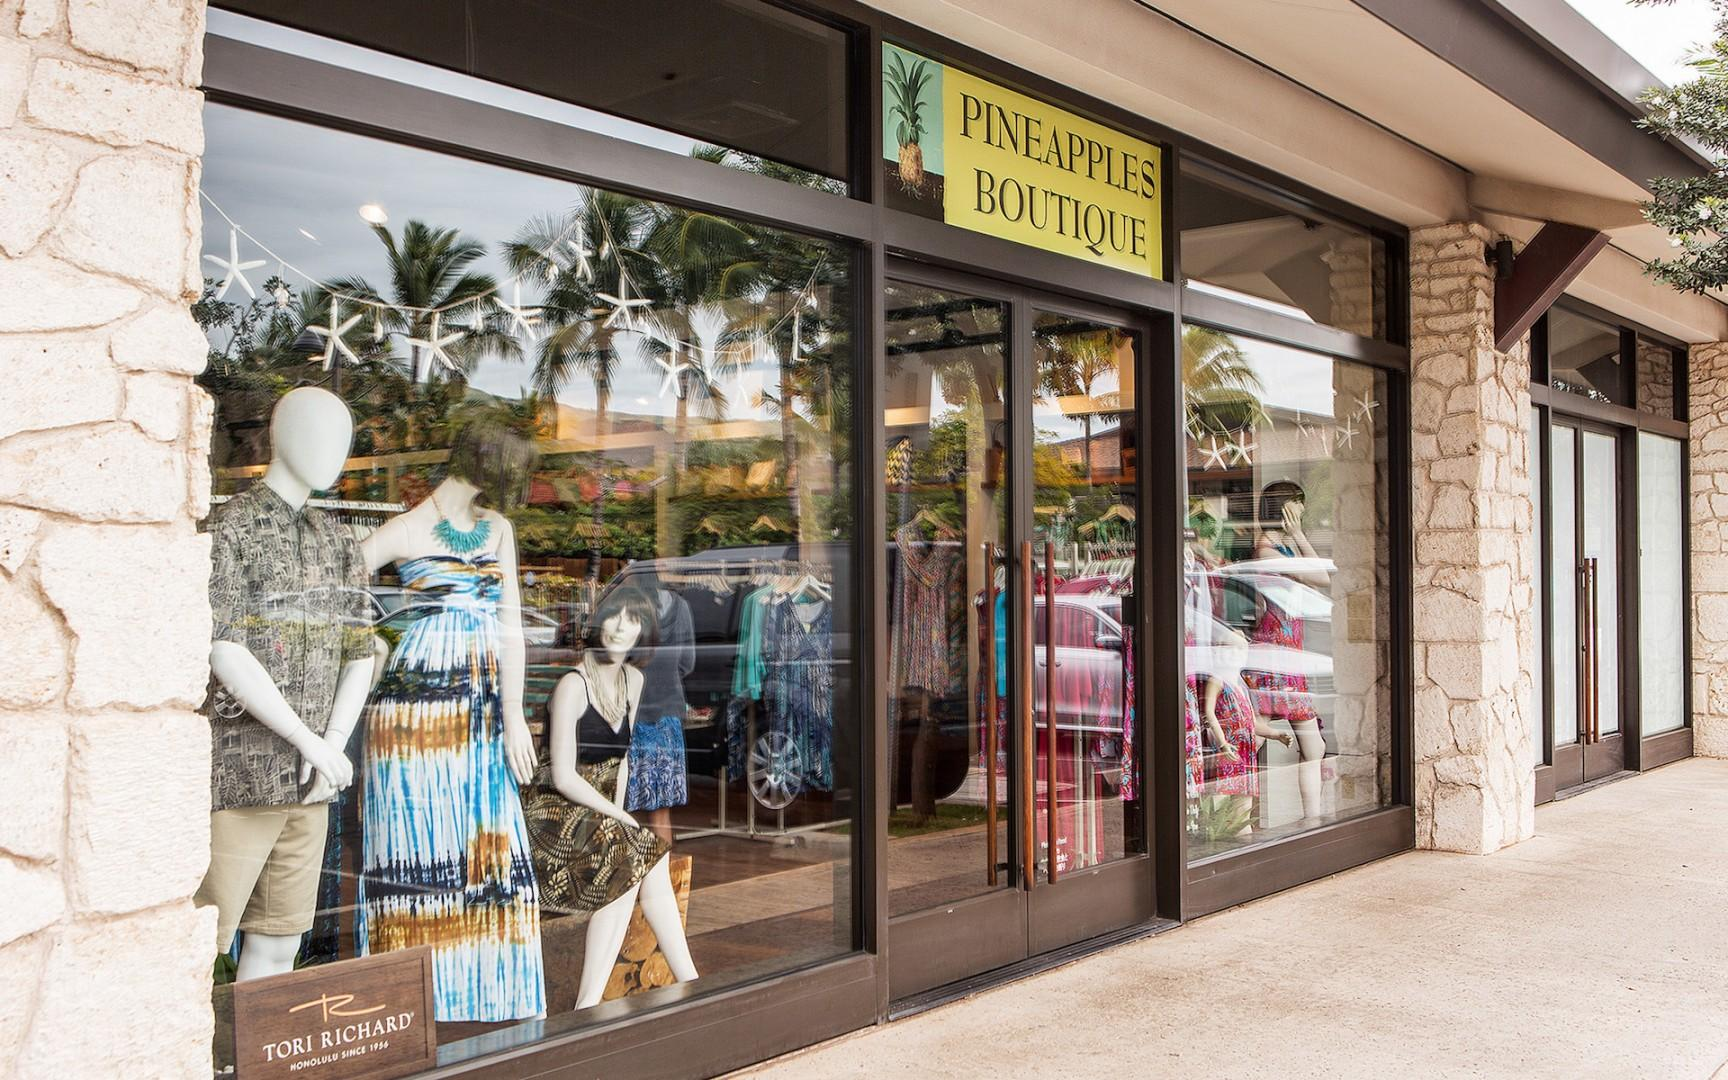 Unique shops and sweet treats just a short drive or 10 minute walk away